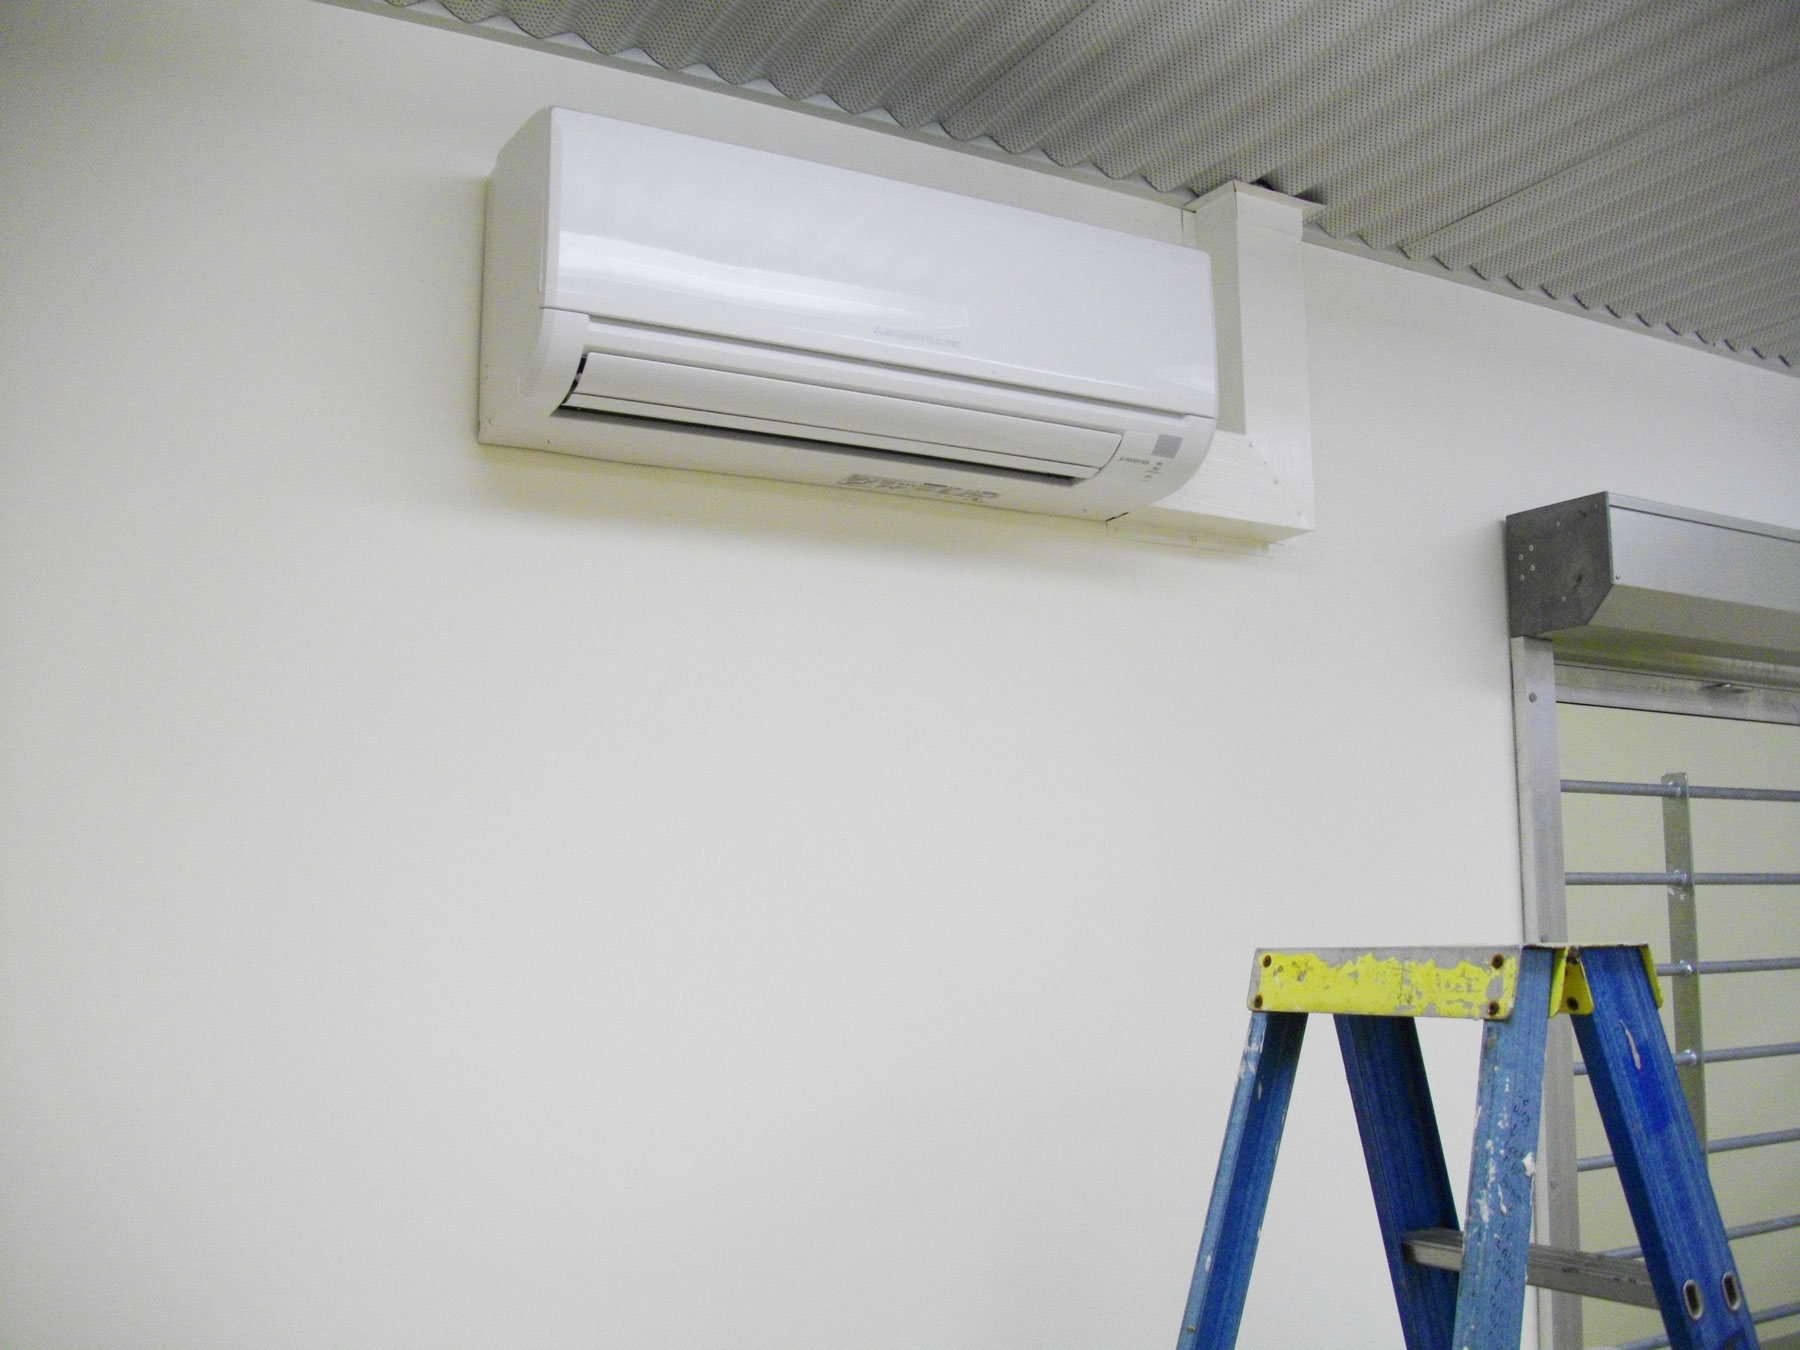 Split system air conditioner mounted on the wall